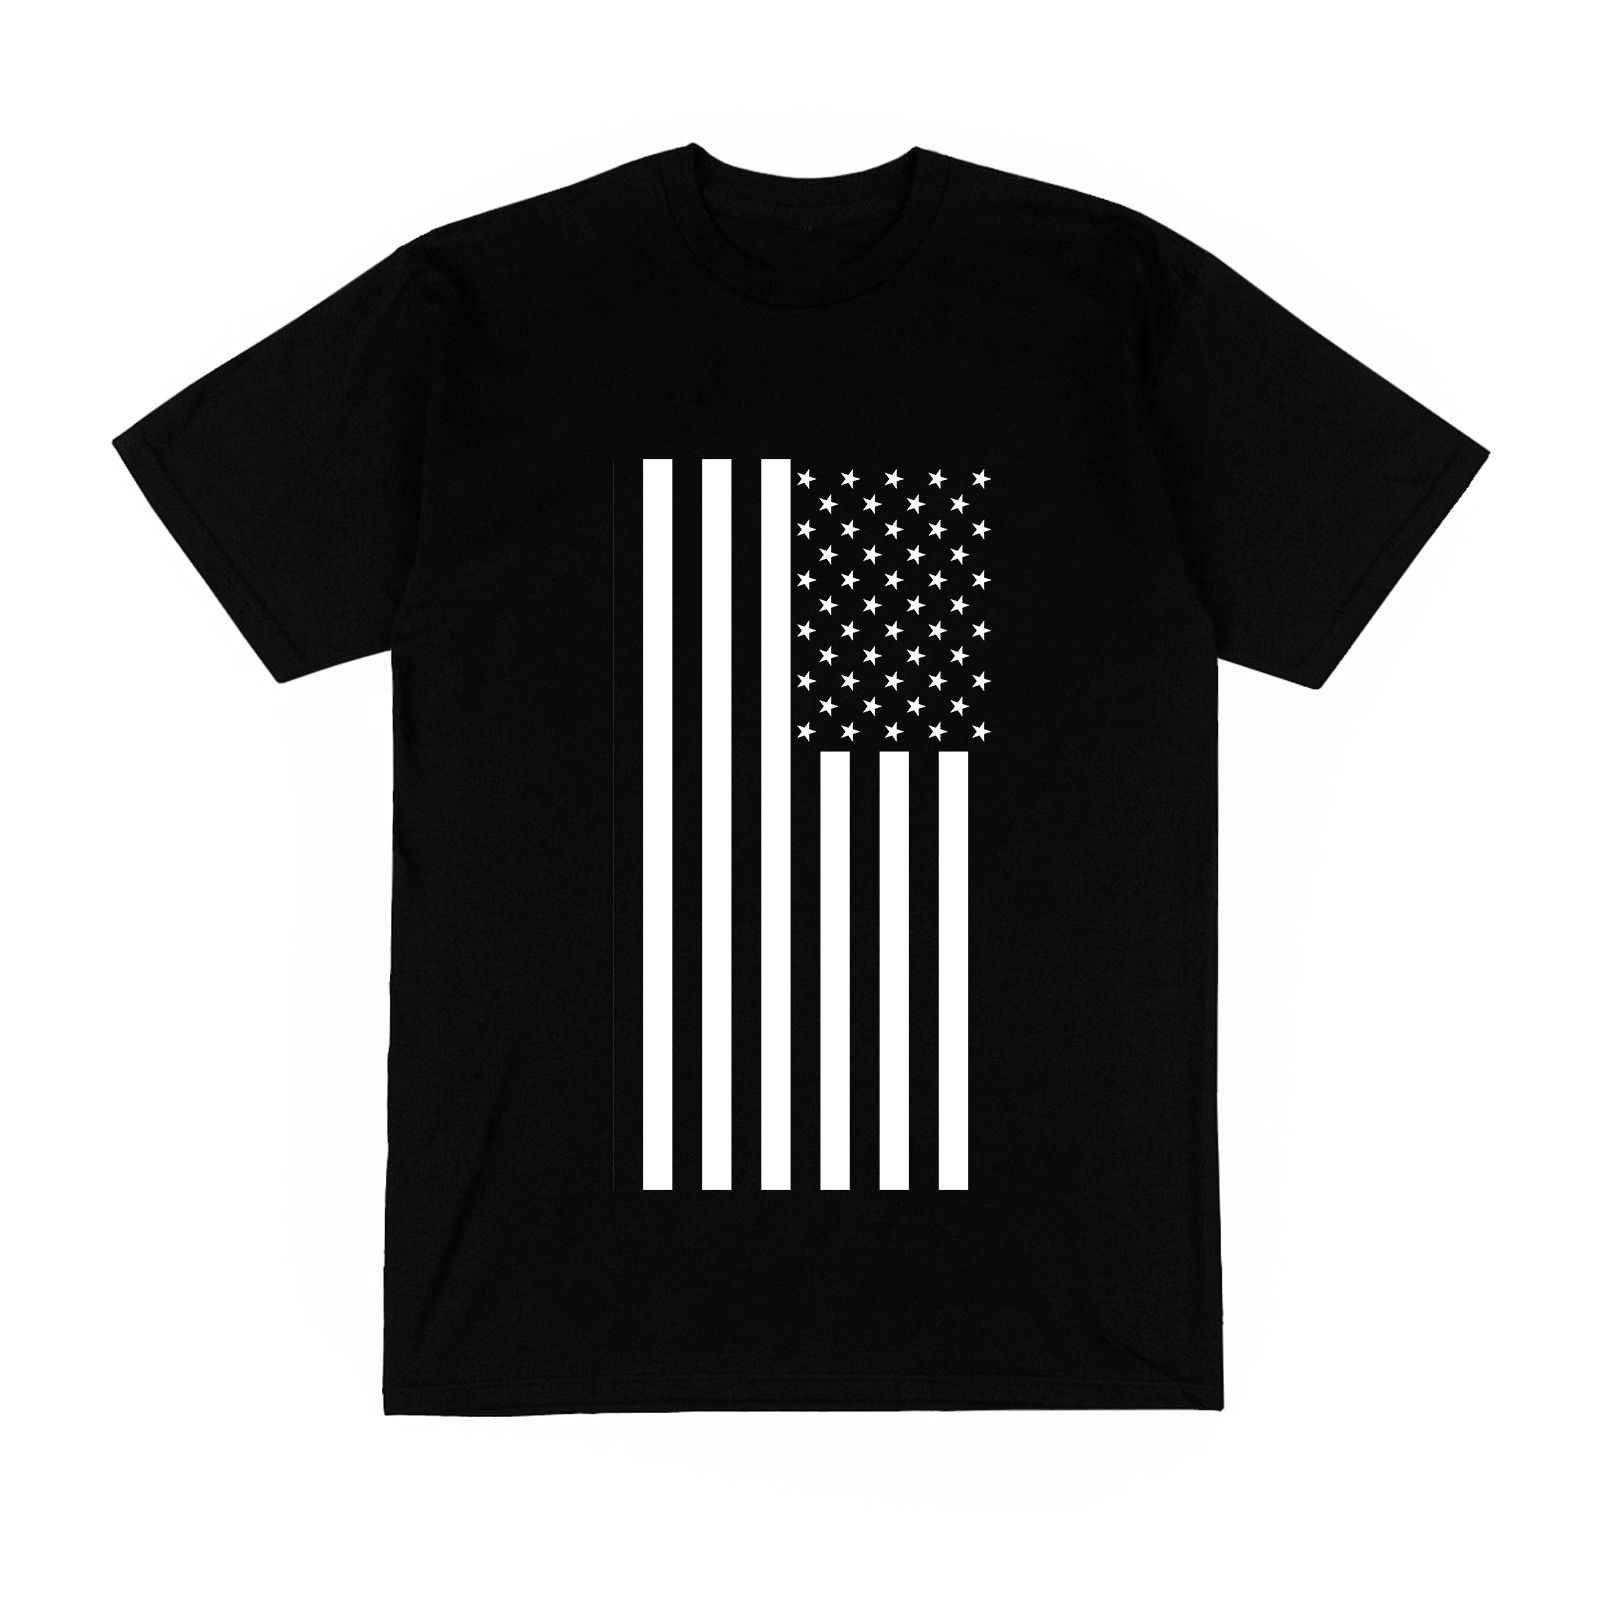 T-shirt Men Flags United States United States Flags National Silver Rap Jay Z Trap Fashion New Brand-Clothing T Shirts Top Tee image